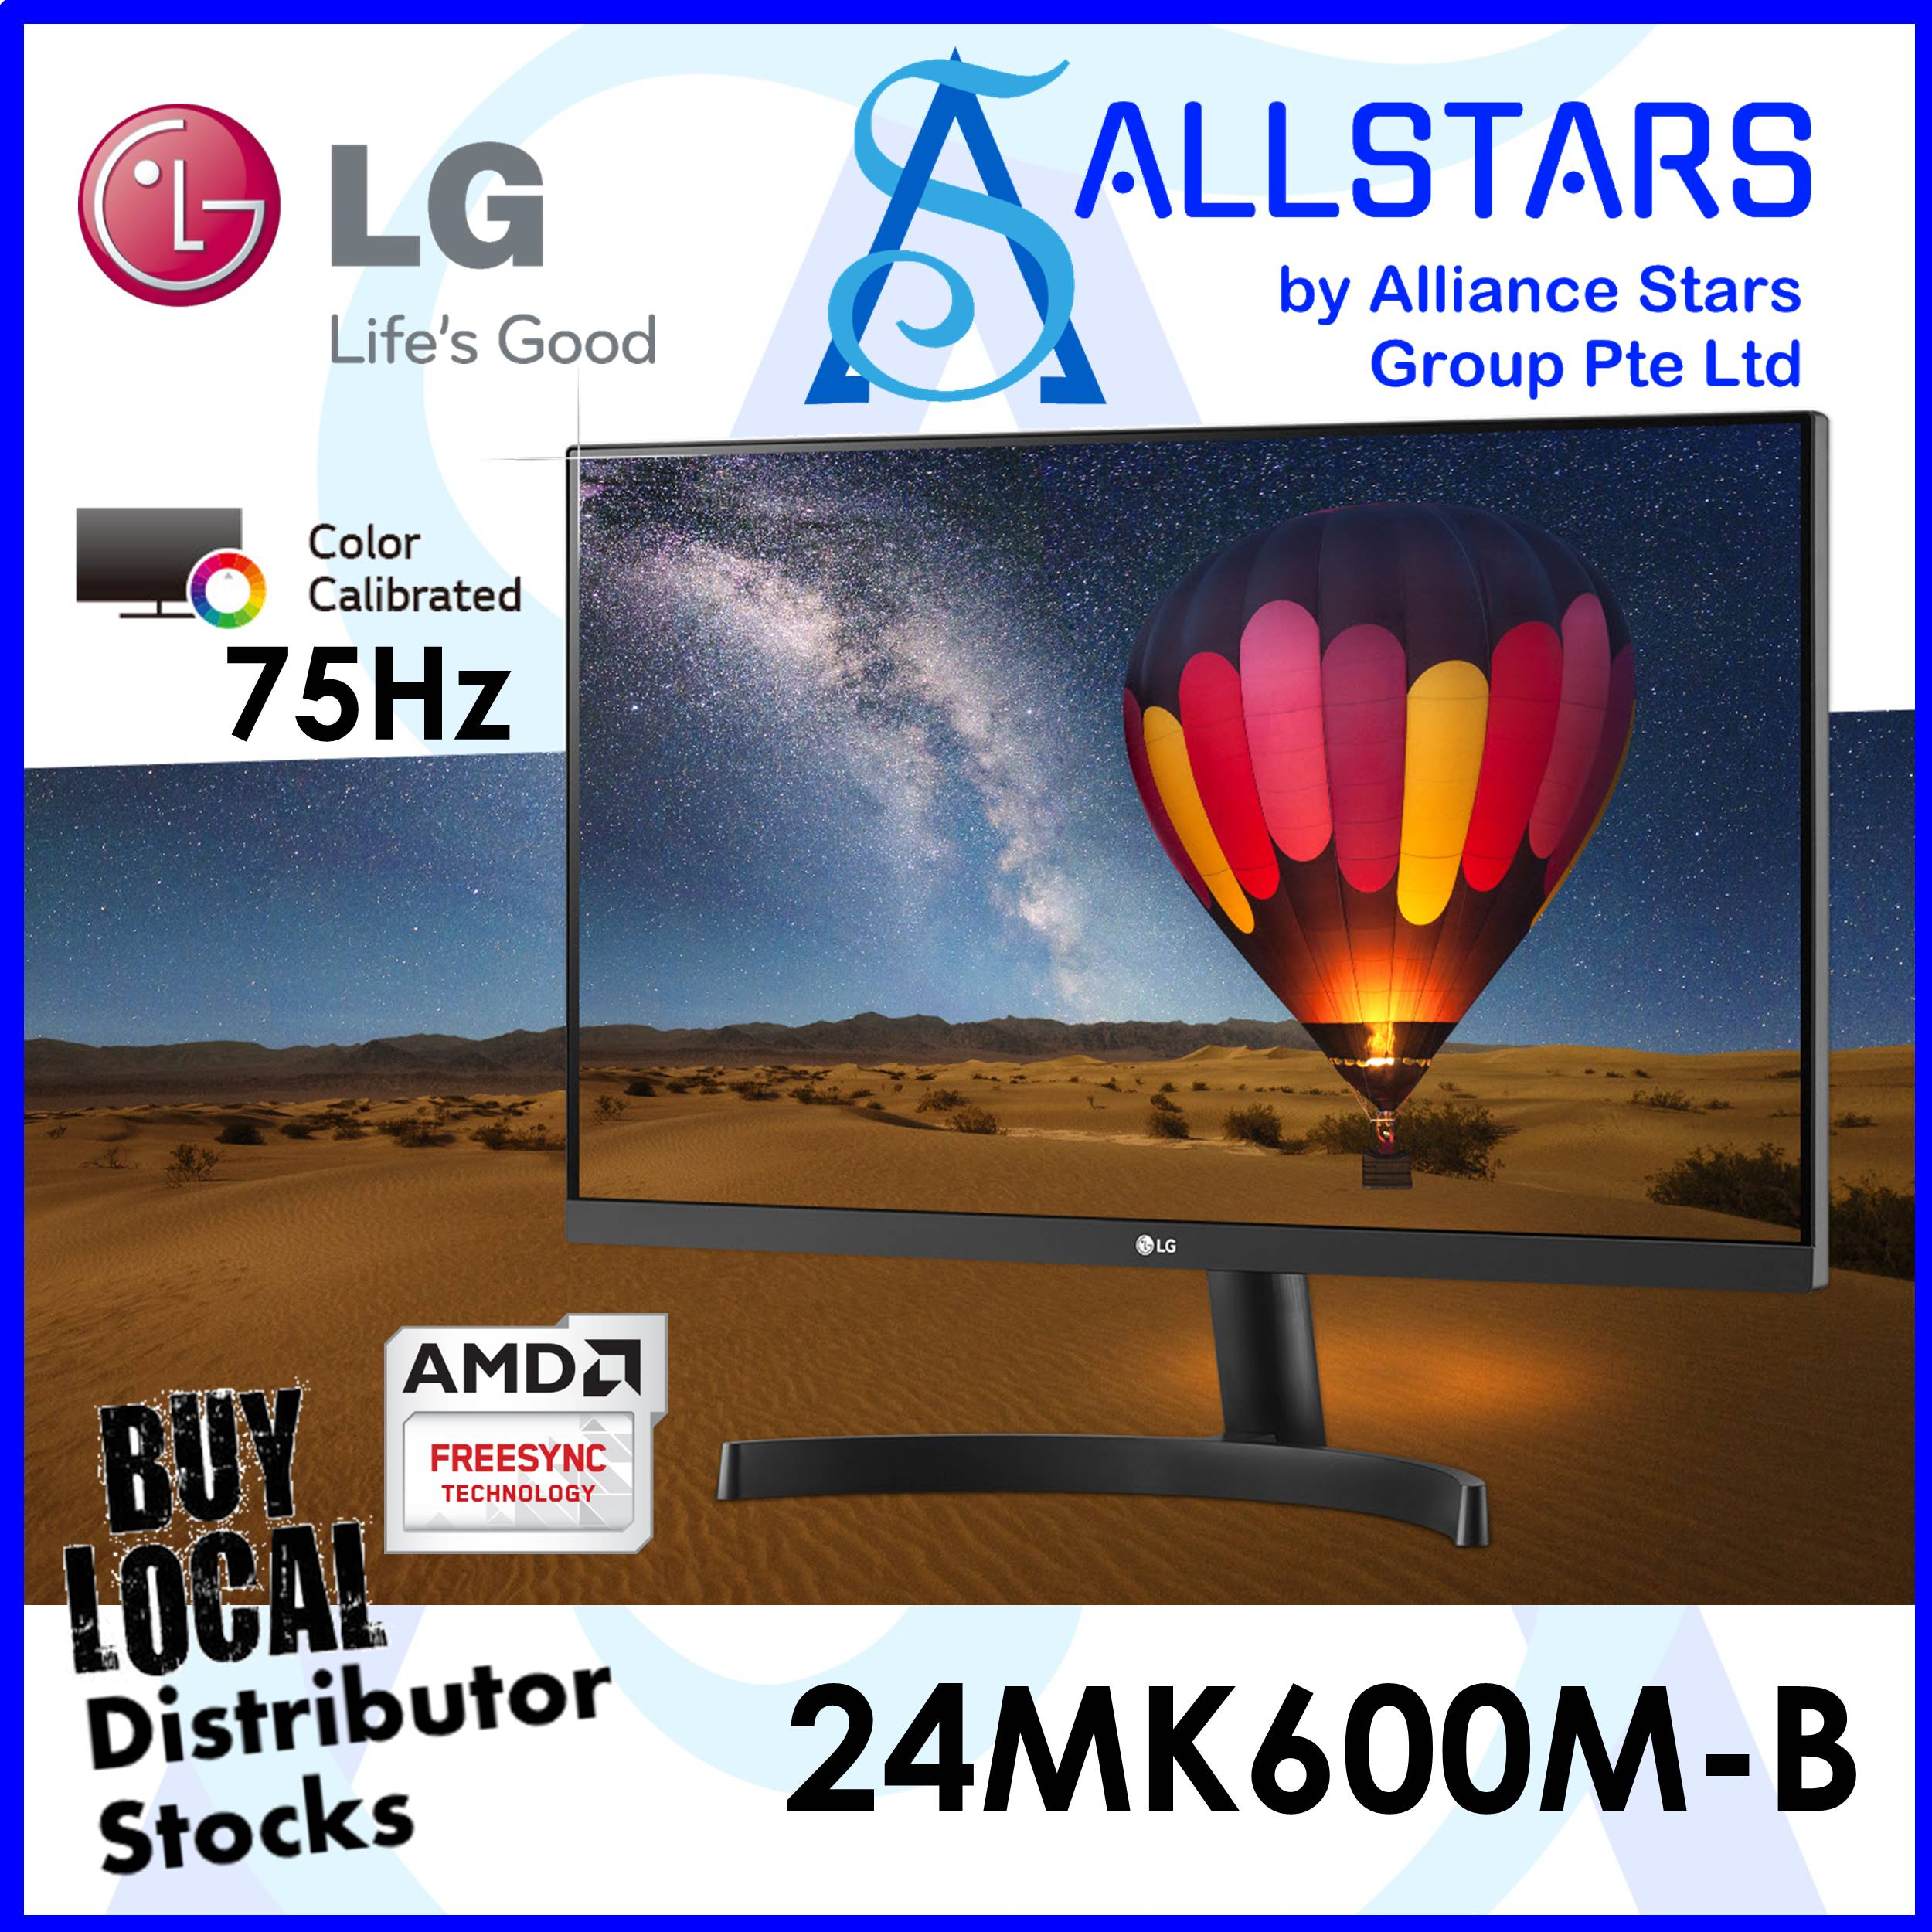 (allstars Promo : We Are Back / Monitor Promo) Lg 23.8 Inch / 24 Inch Class 24mk600 / 24mk600m-B Full Hd Ips Monitor (hdmix2 / Vga) / Color Calibrated / 75hz / Freesync (warranty 3years On-Site By Lg Singapore).